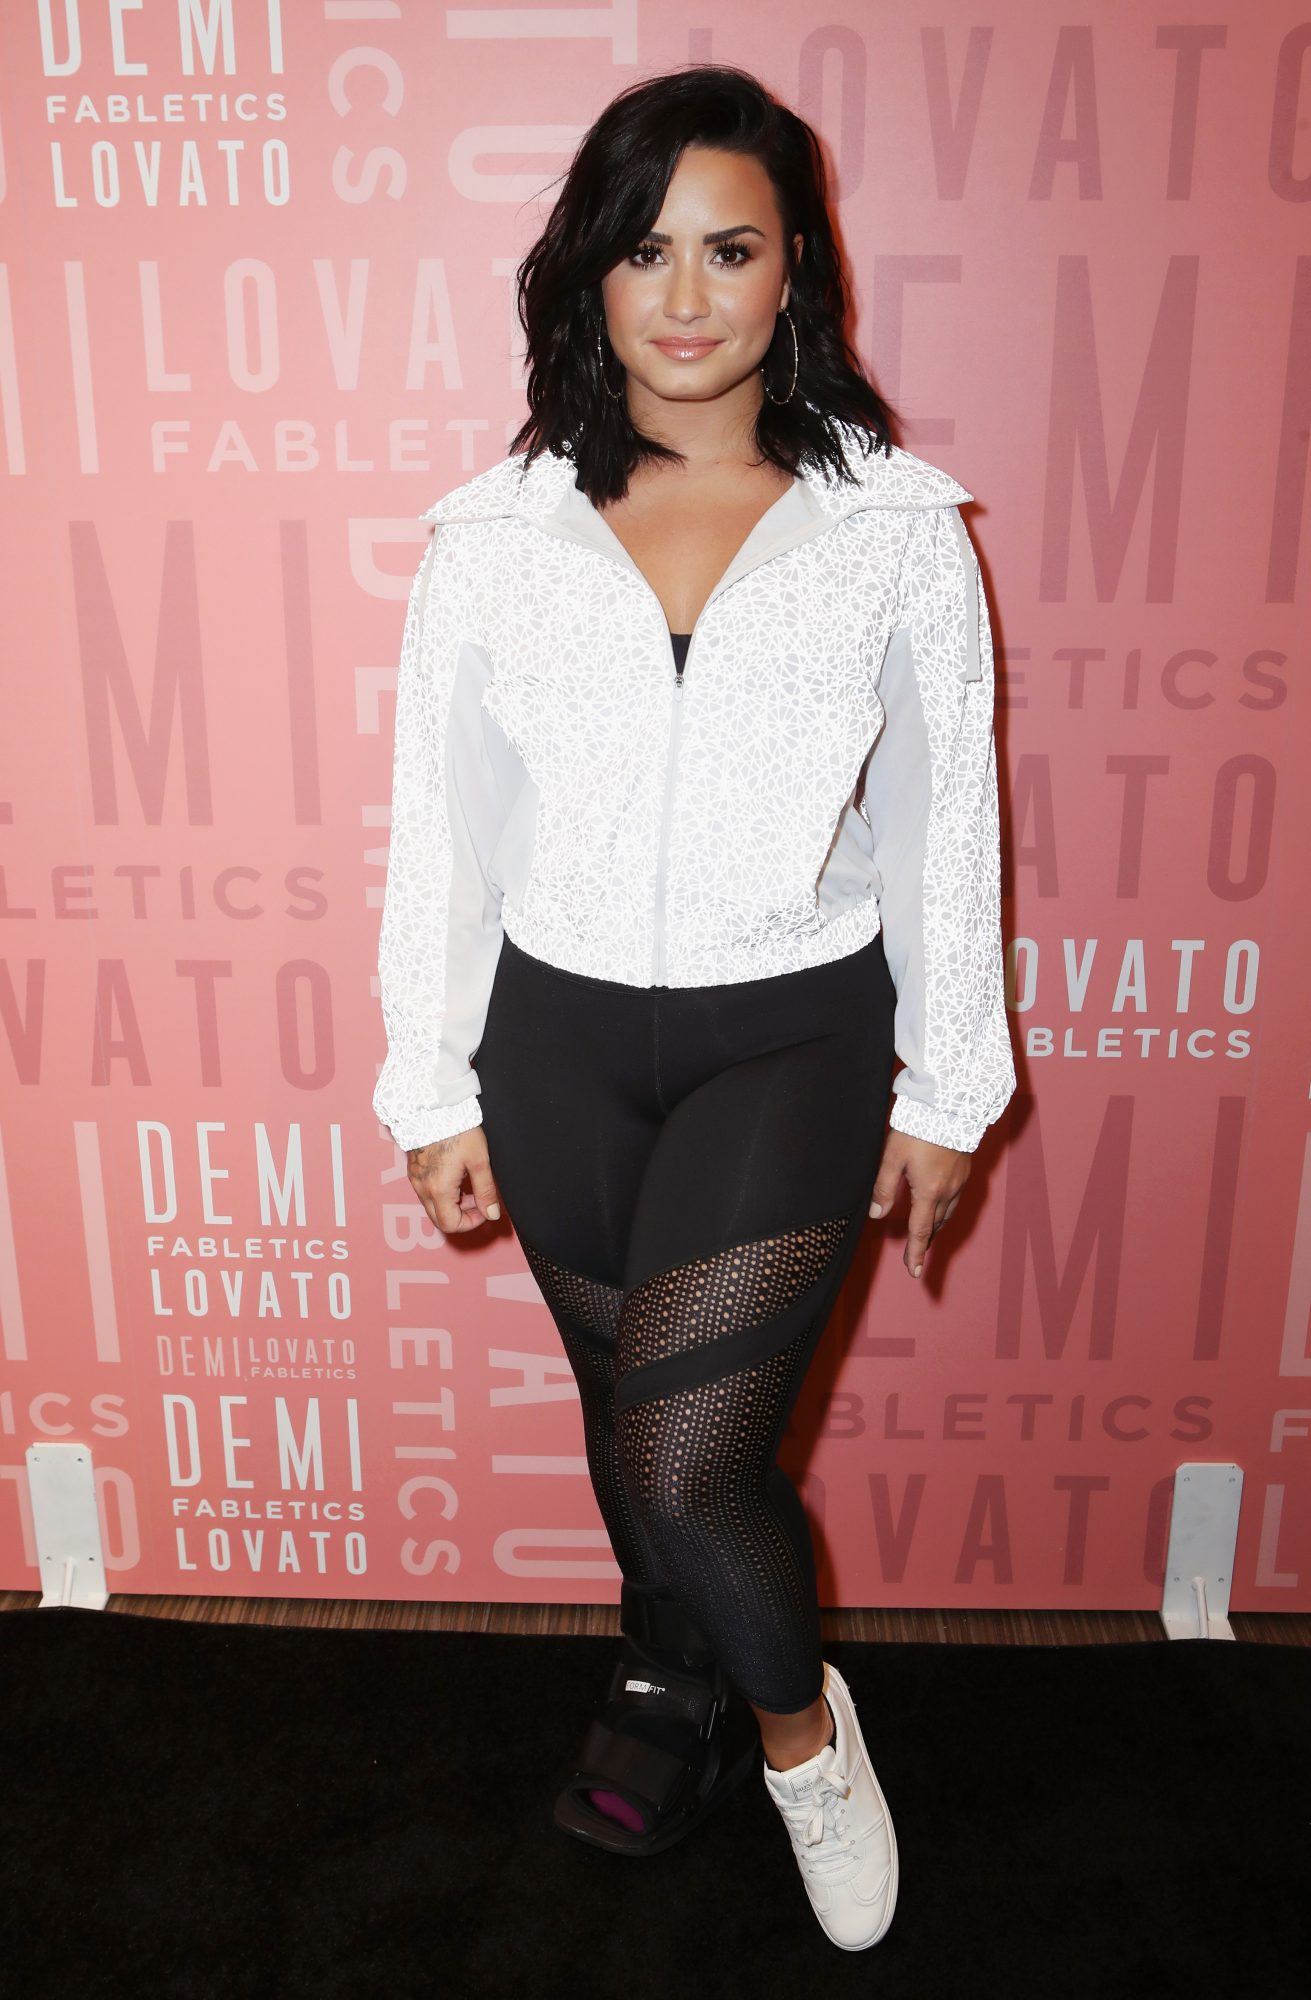 Demi Lovato Is 'Awake and with Her Family' Following Apparent Overdose, Says Rep